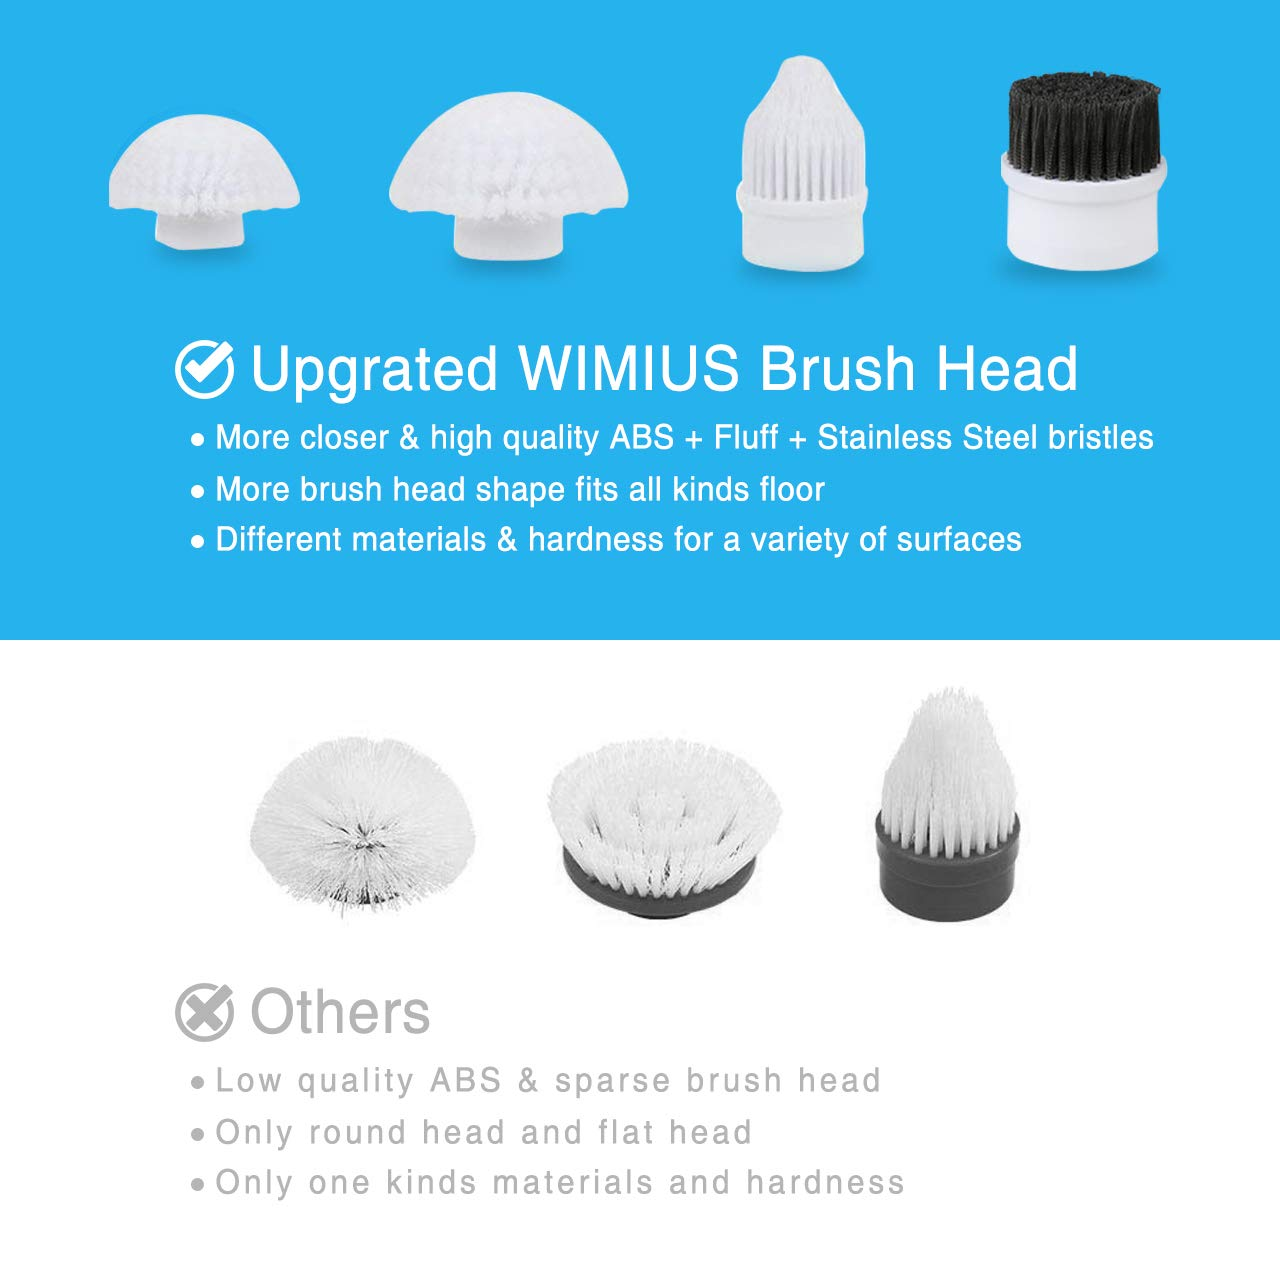 Upgraded Spin Scrubber with 1 Stain Steel Brush, WiMiUS 360 Degrees Electric Spin Scubber with 4 Brush Replacement Heads Cordless Power Srubber Cleaning Brush for Bathroom Kitchen,Tub (Spin Scrubber) by WiMiUS (Image #7)